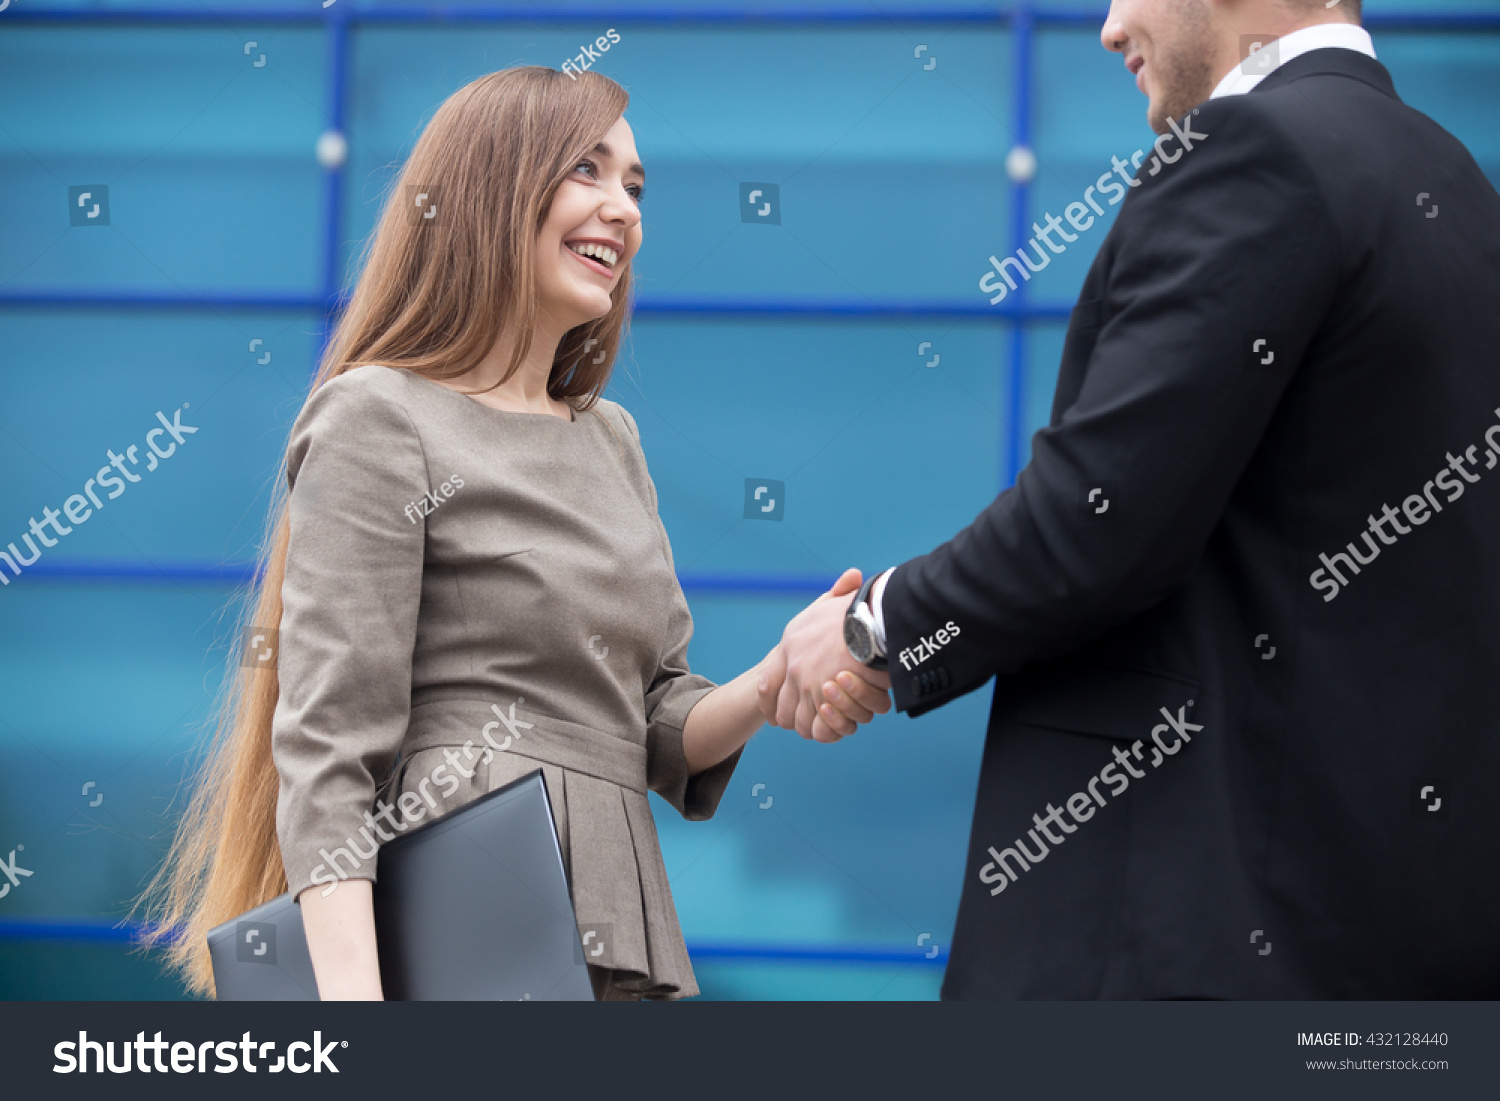 Business people handshake greeting deal at work photo free download - Successful Business People Shaking Hands For Greeting Or In Agreement Happy To Work Together Focus